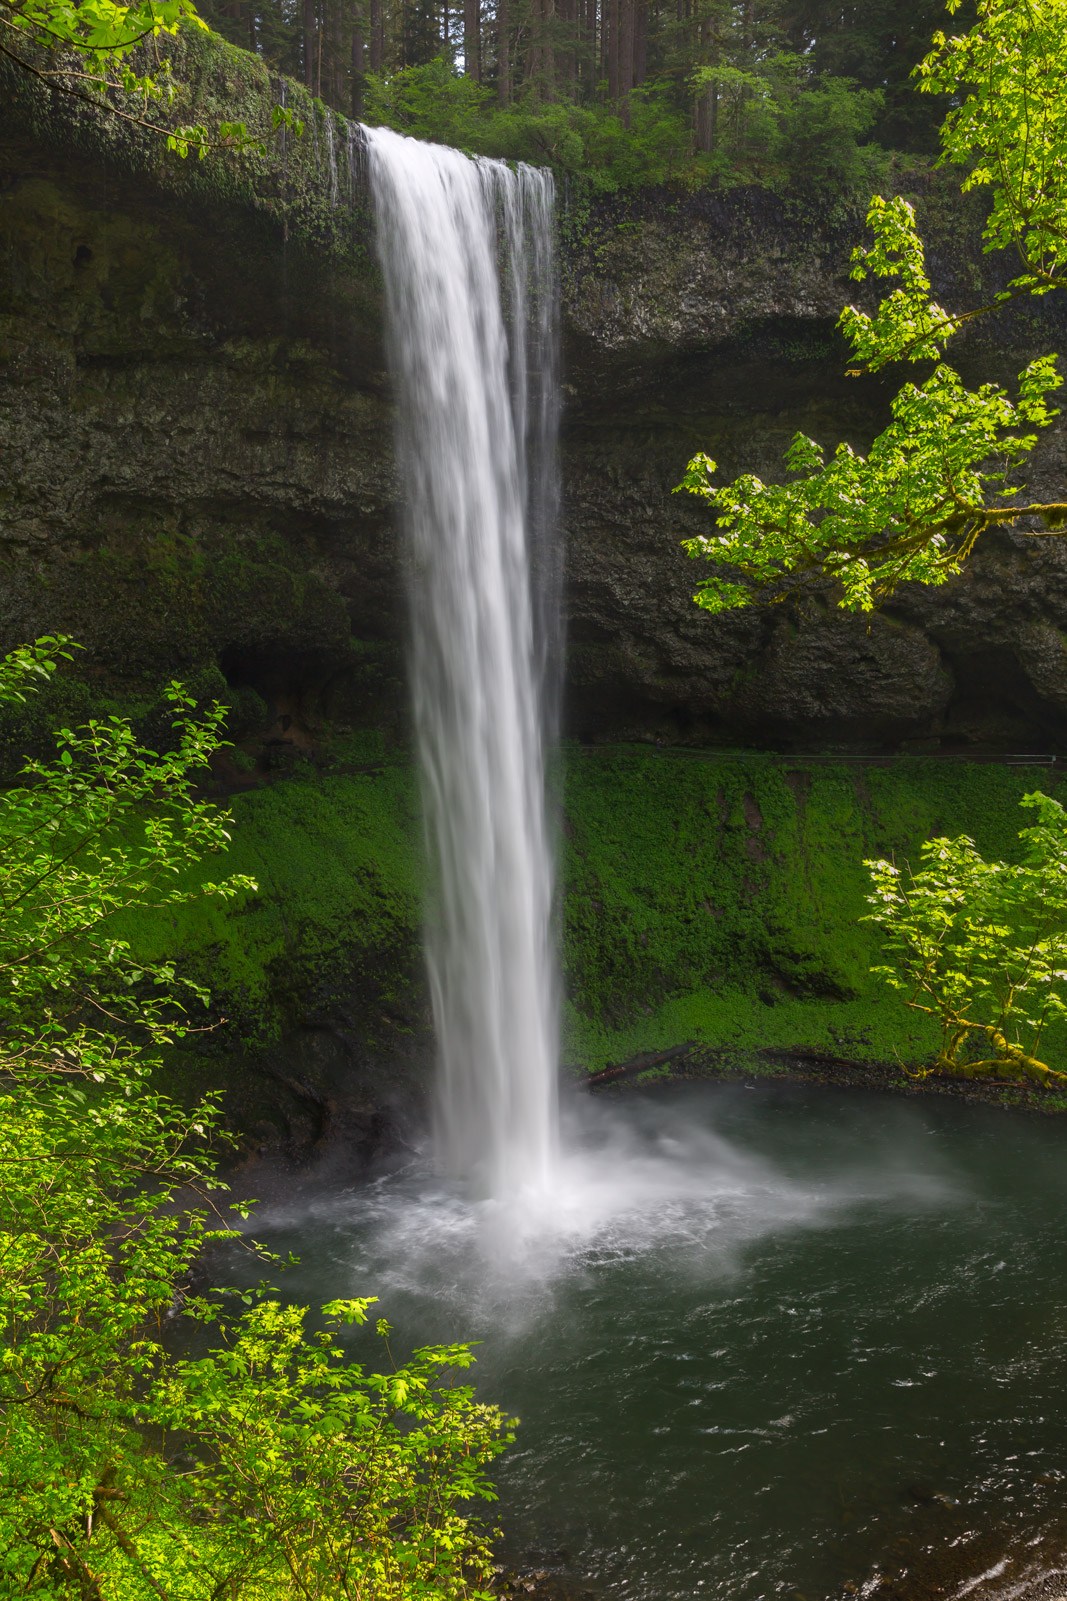 Oregon, South Falls, Silver Falls, Waterfall, limited edition, photograph, fine art, landscape, photo